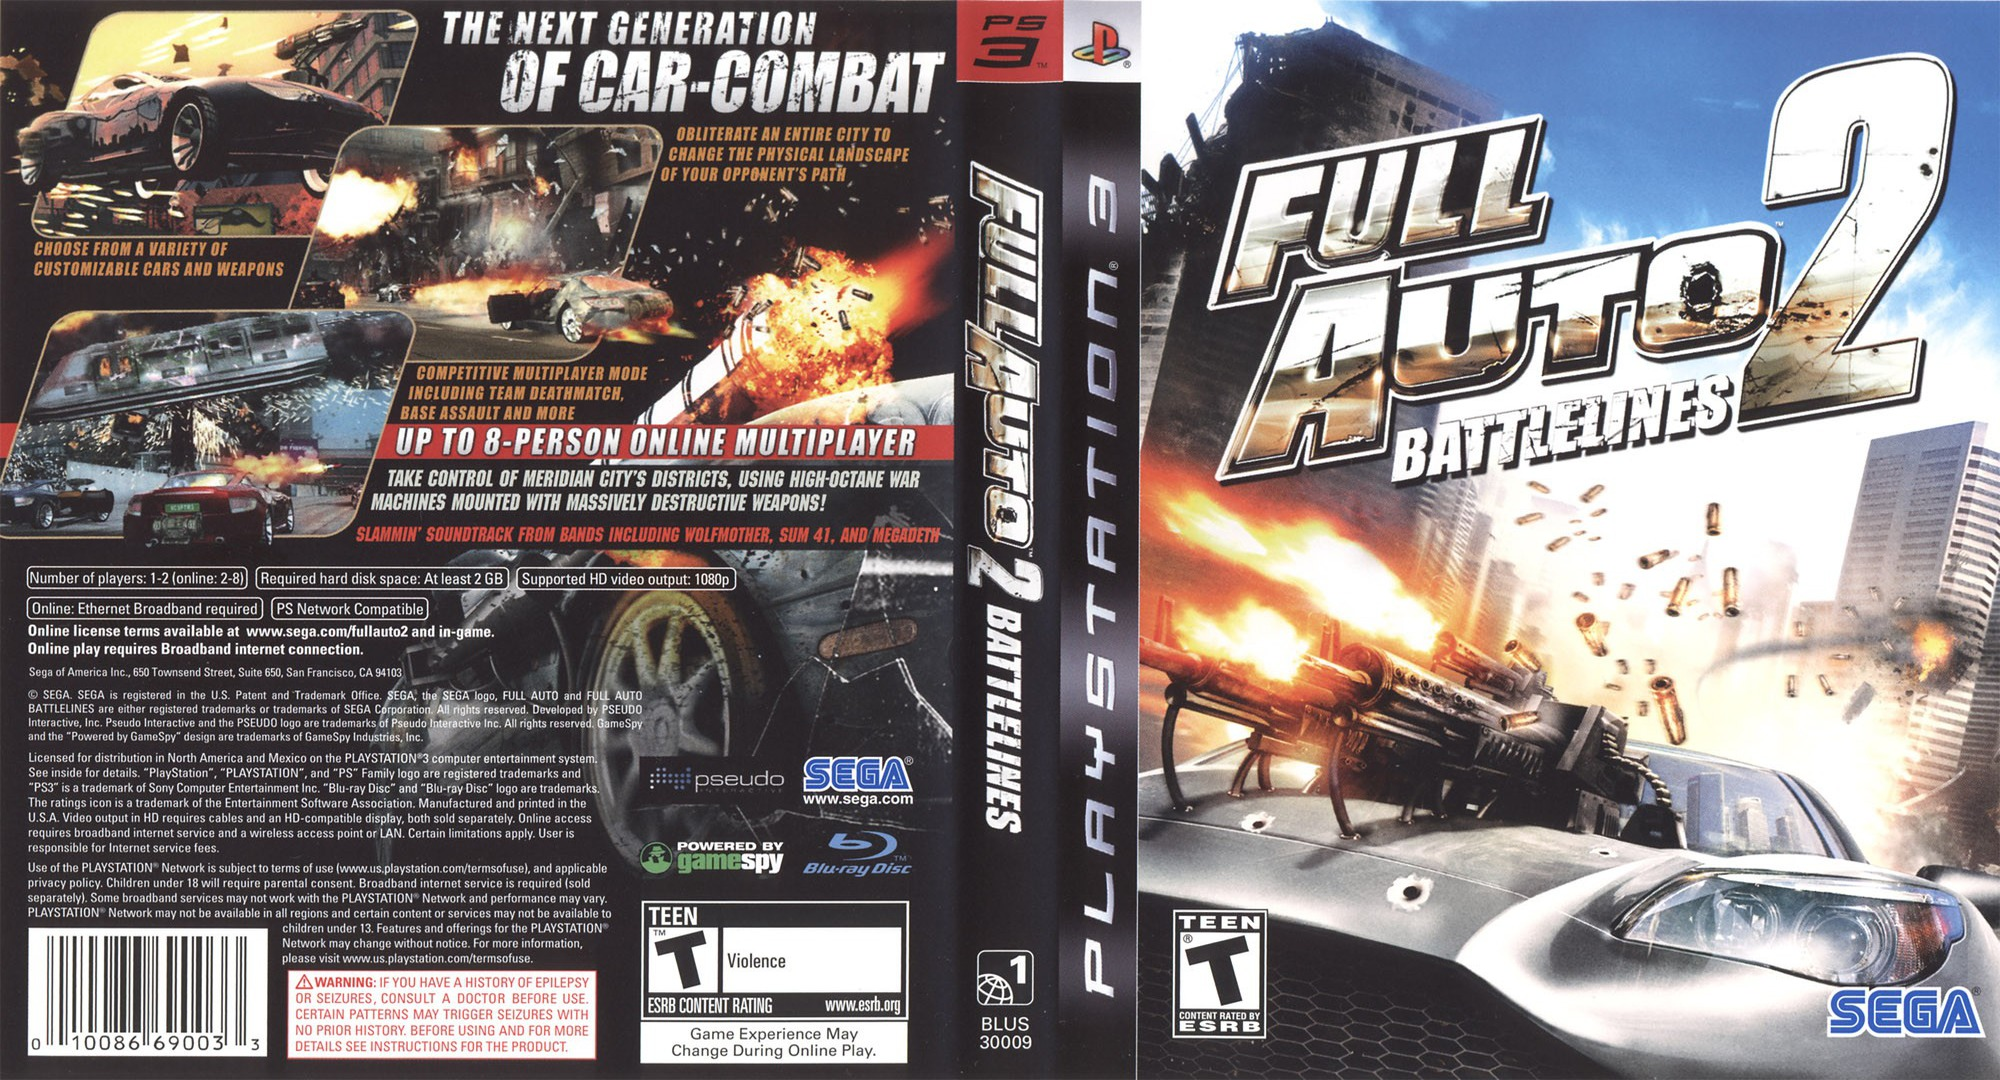 Full Auto 2: Battlelines PS3 coverfullHQ (BLUS30009)